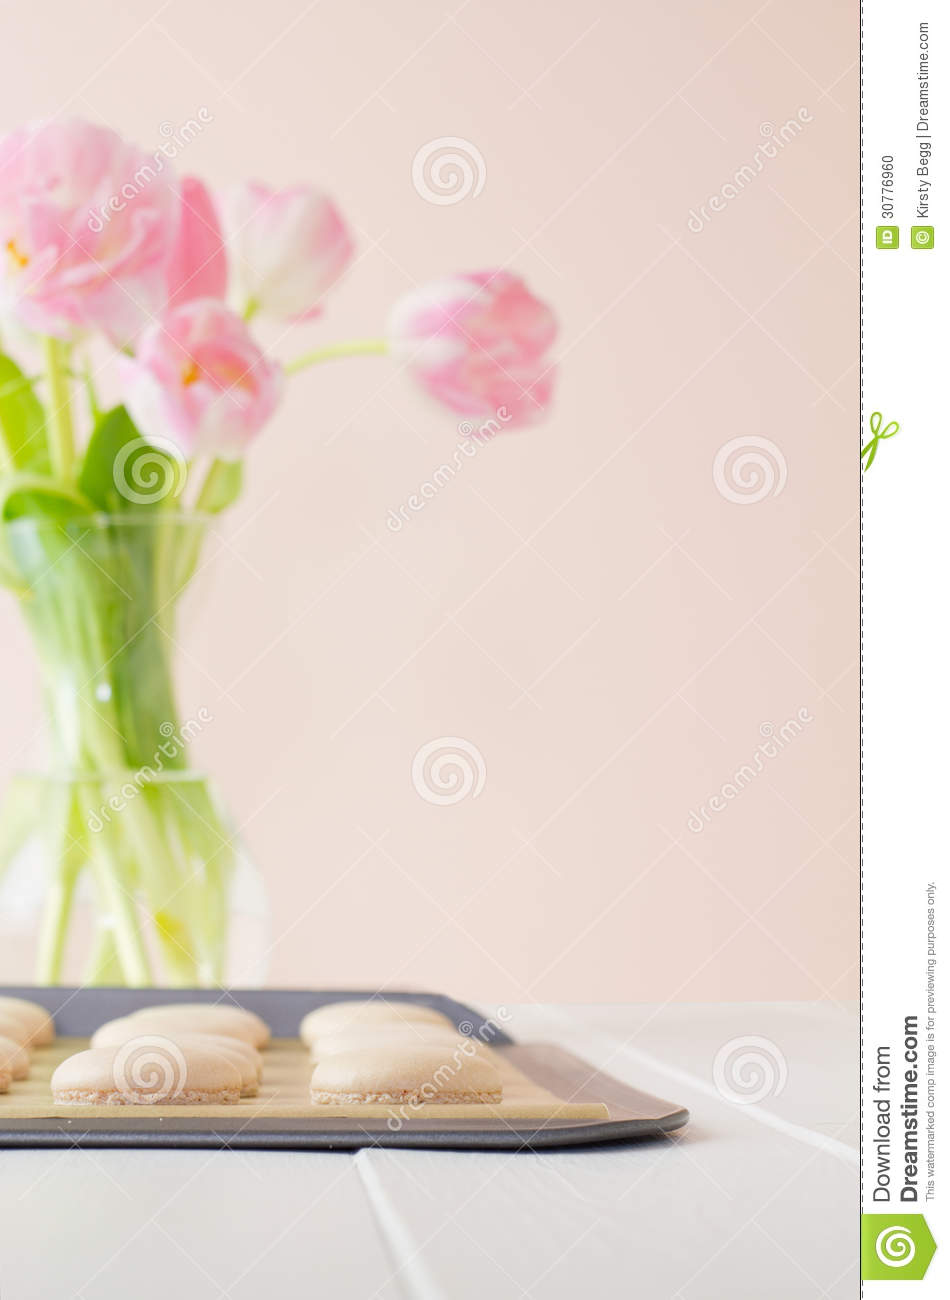 Macarons On Baking Sheet With Tulips Stock Photo - Image: 30776960